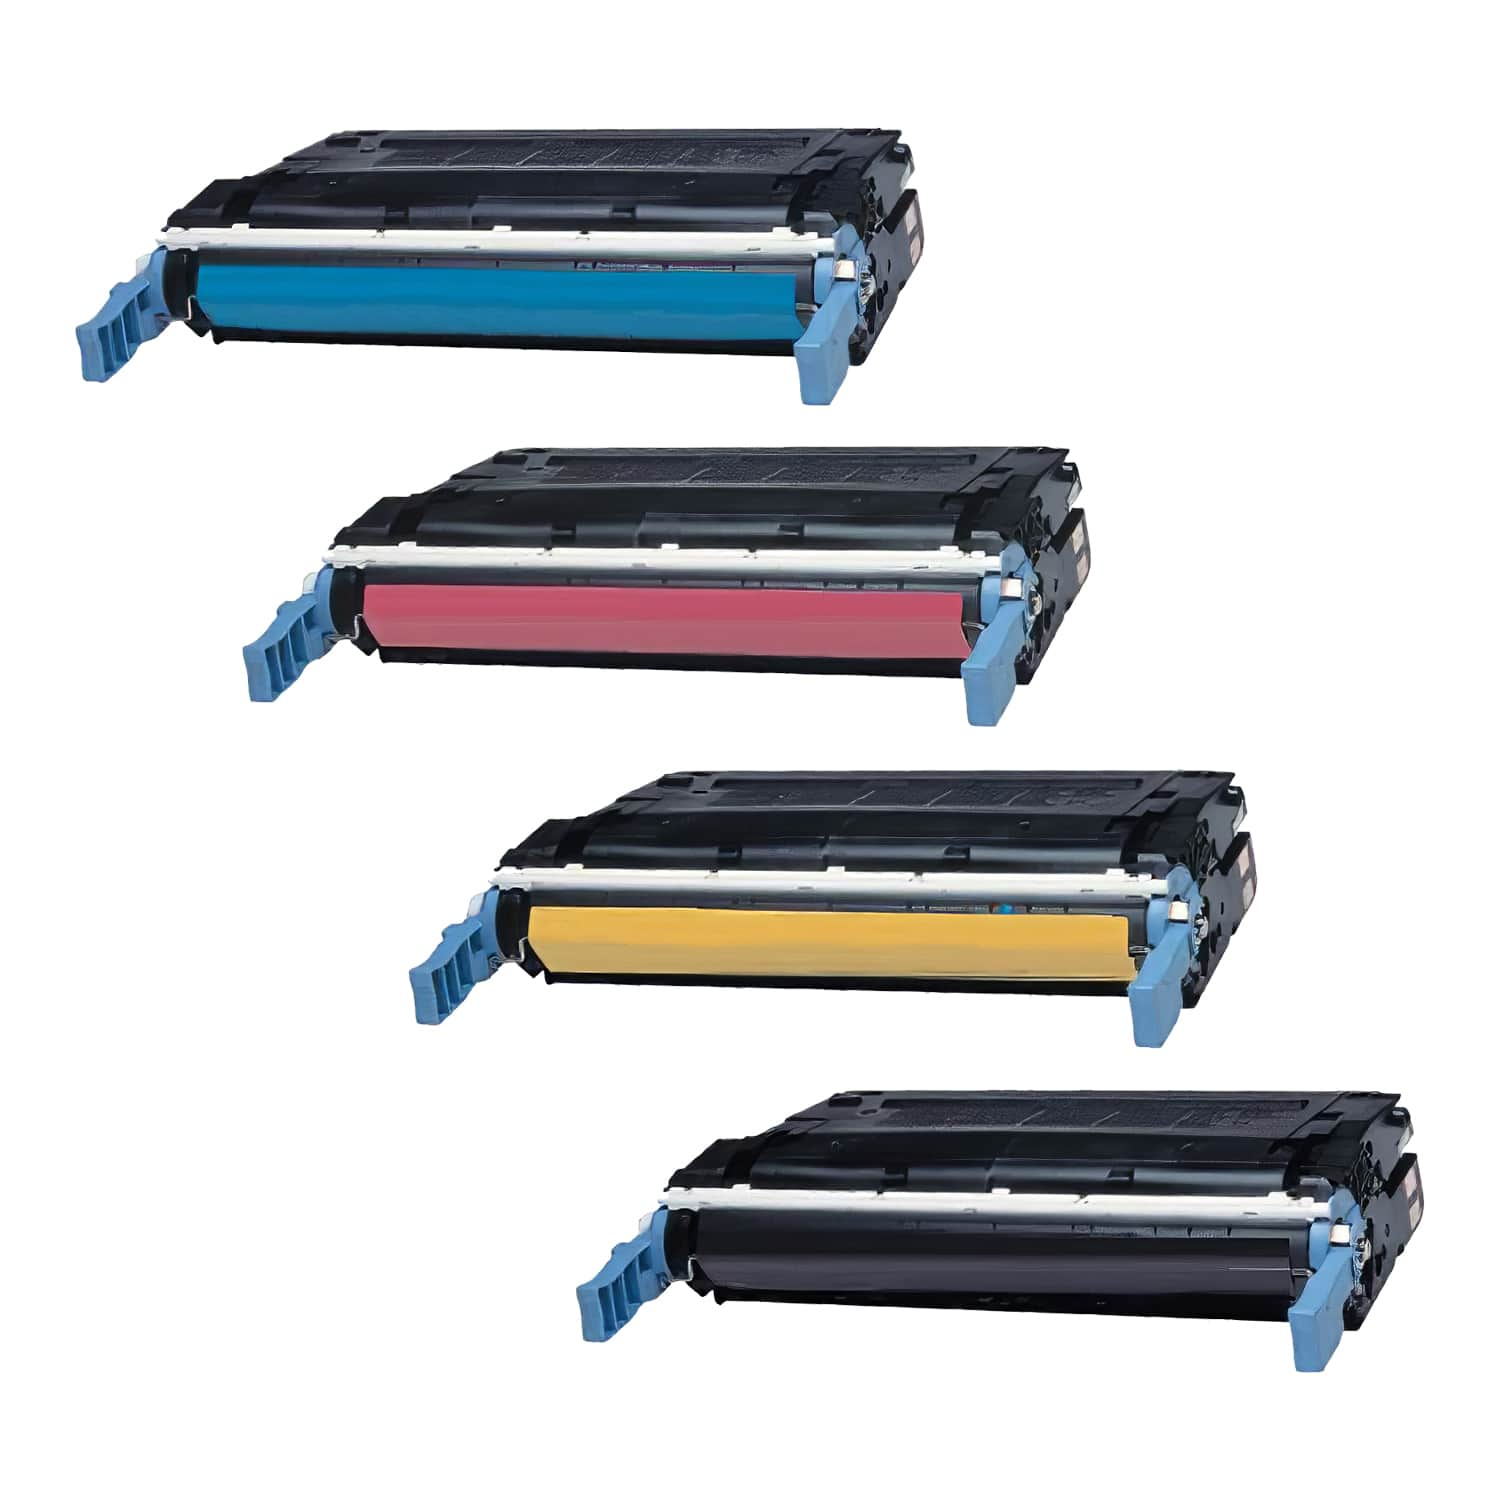 Remanufactured HP Toner Cartridge Bundlpack 645A CMYK Pack - 4 Cartridges